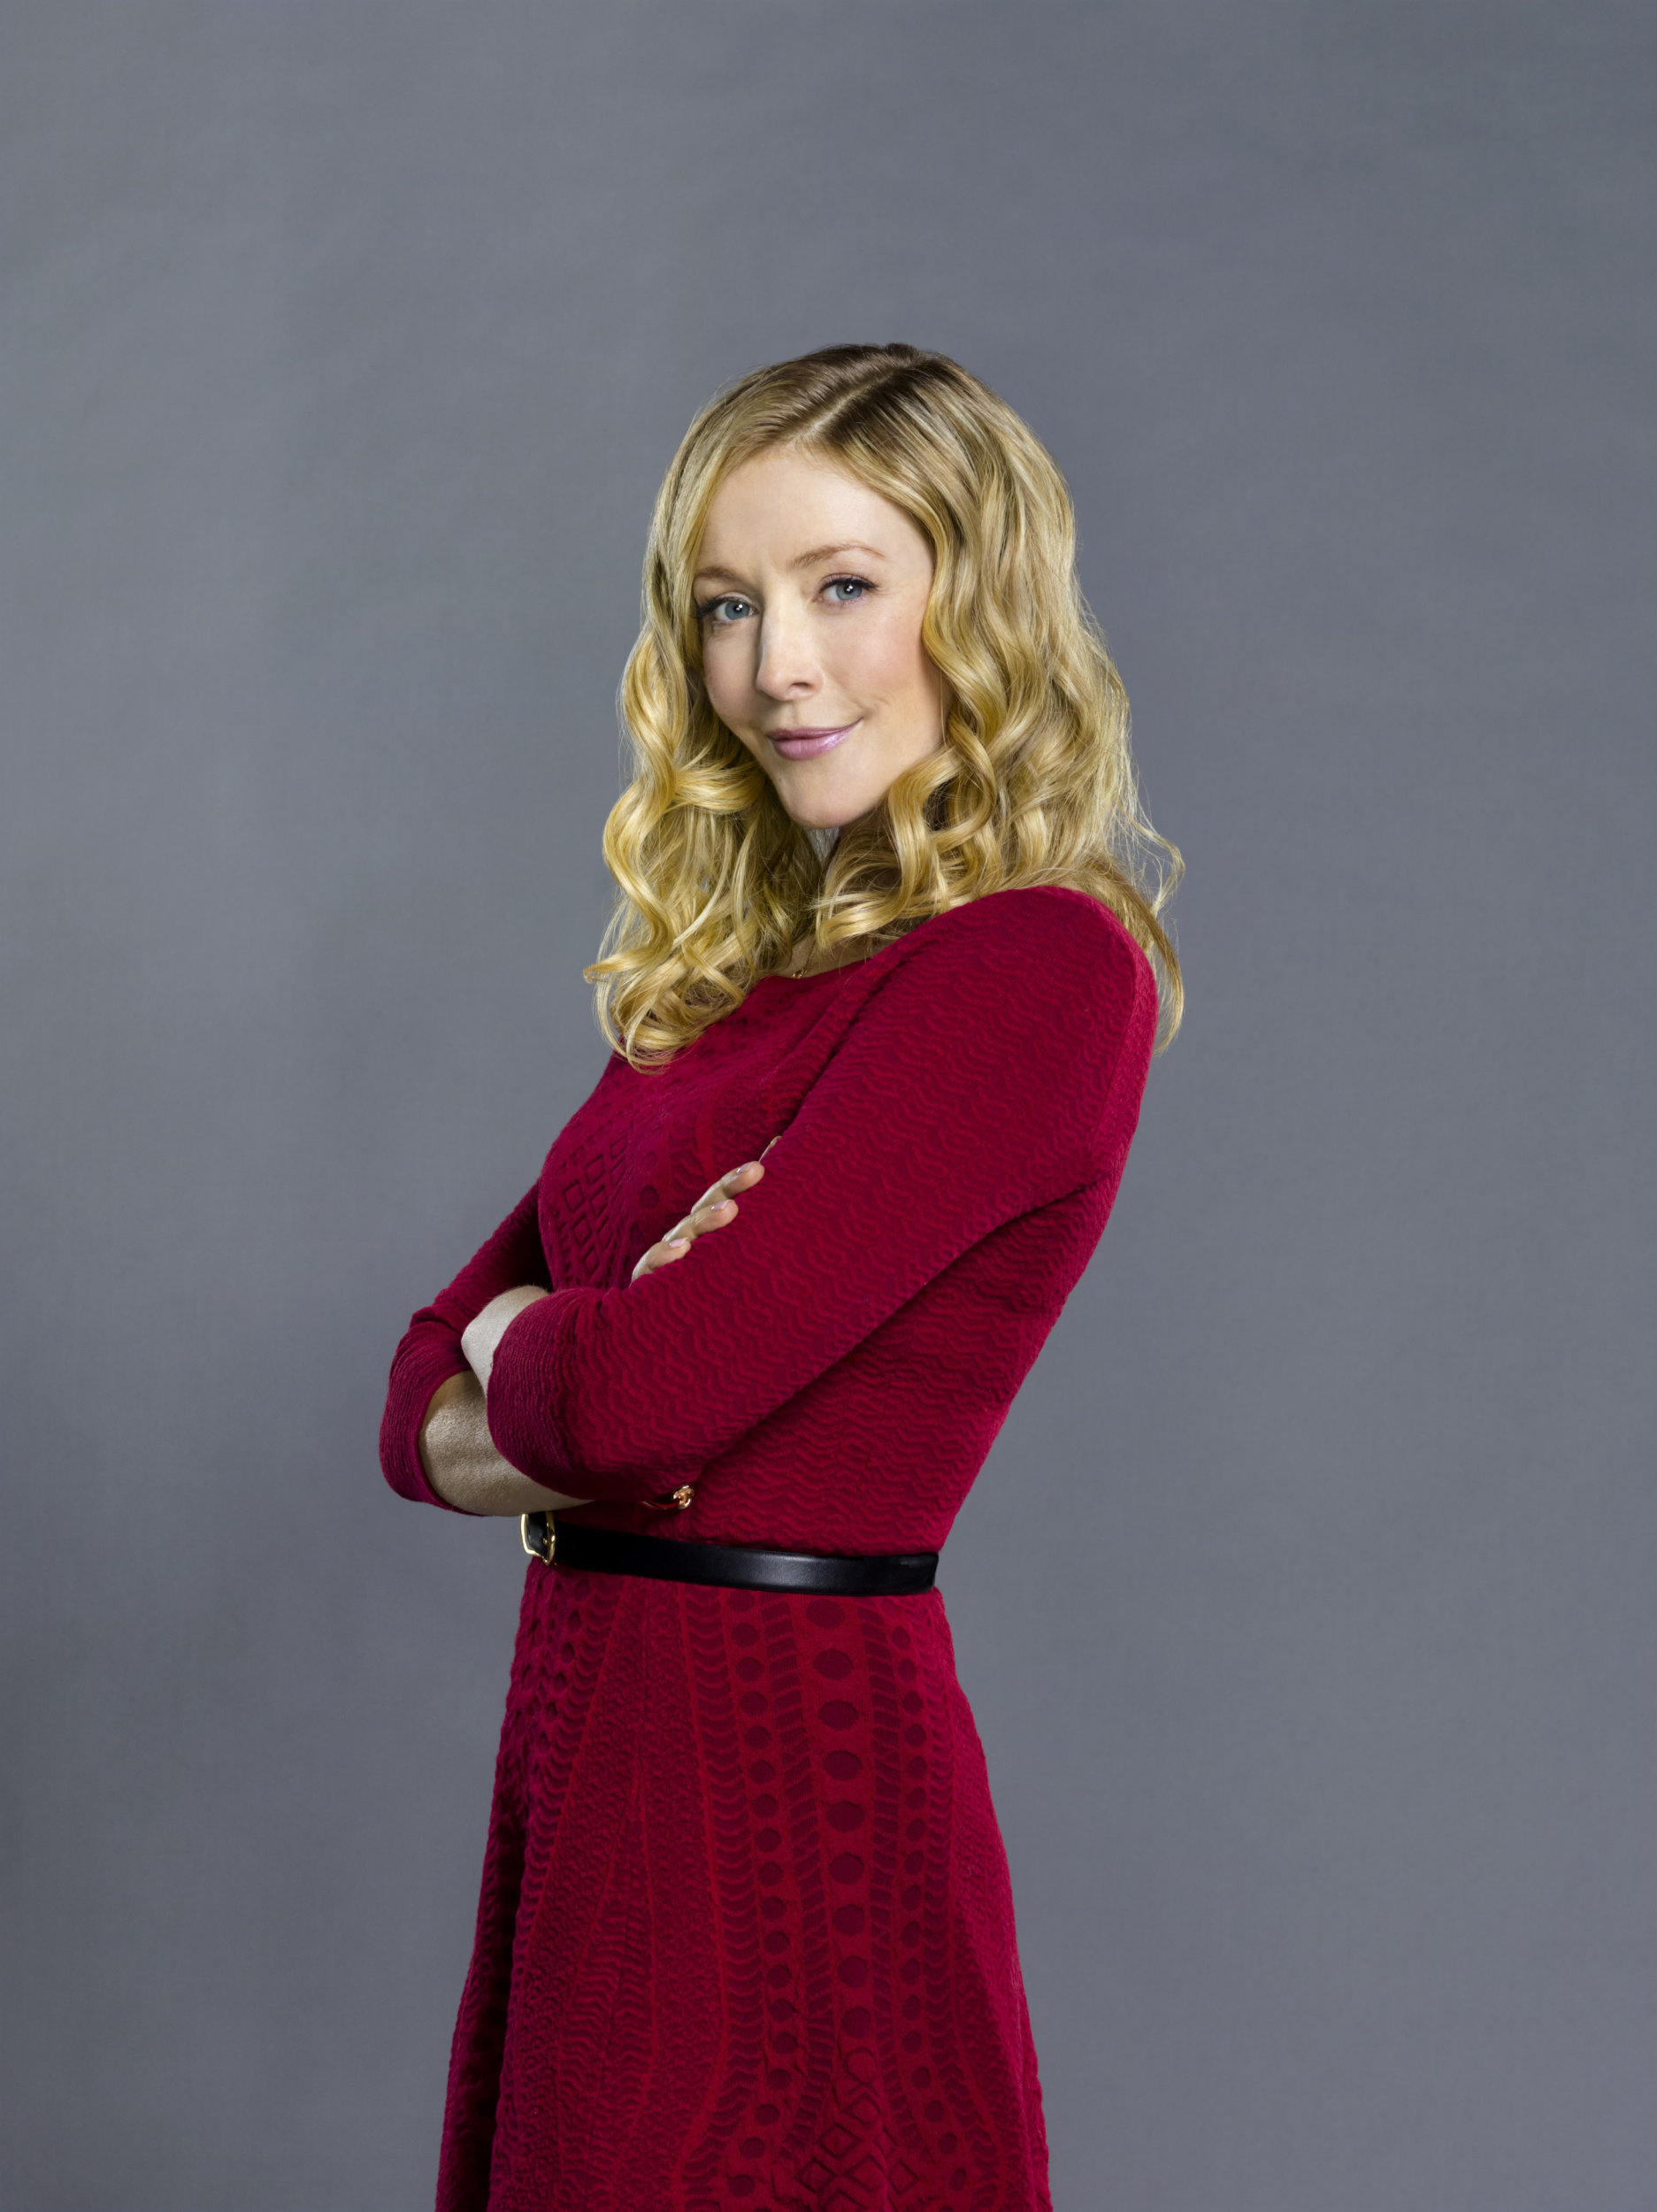 Angel Of Christmas.Jennifer Finnigan As Susan In Angel Of Christmas